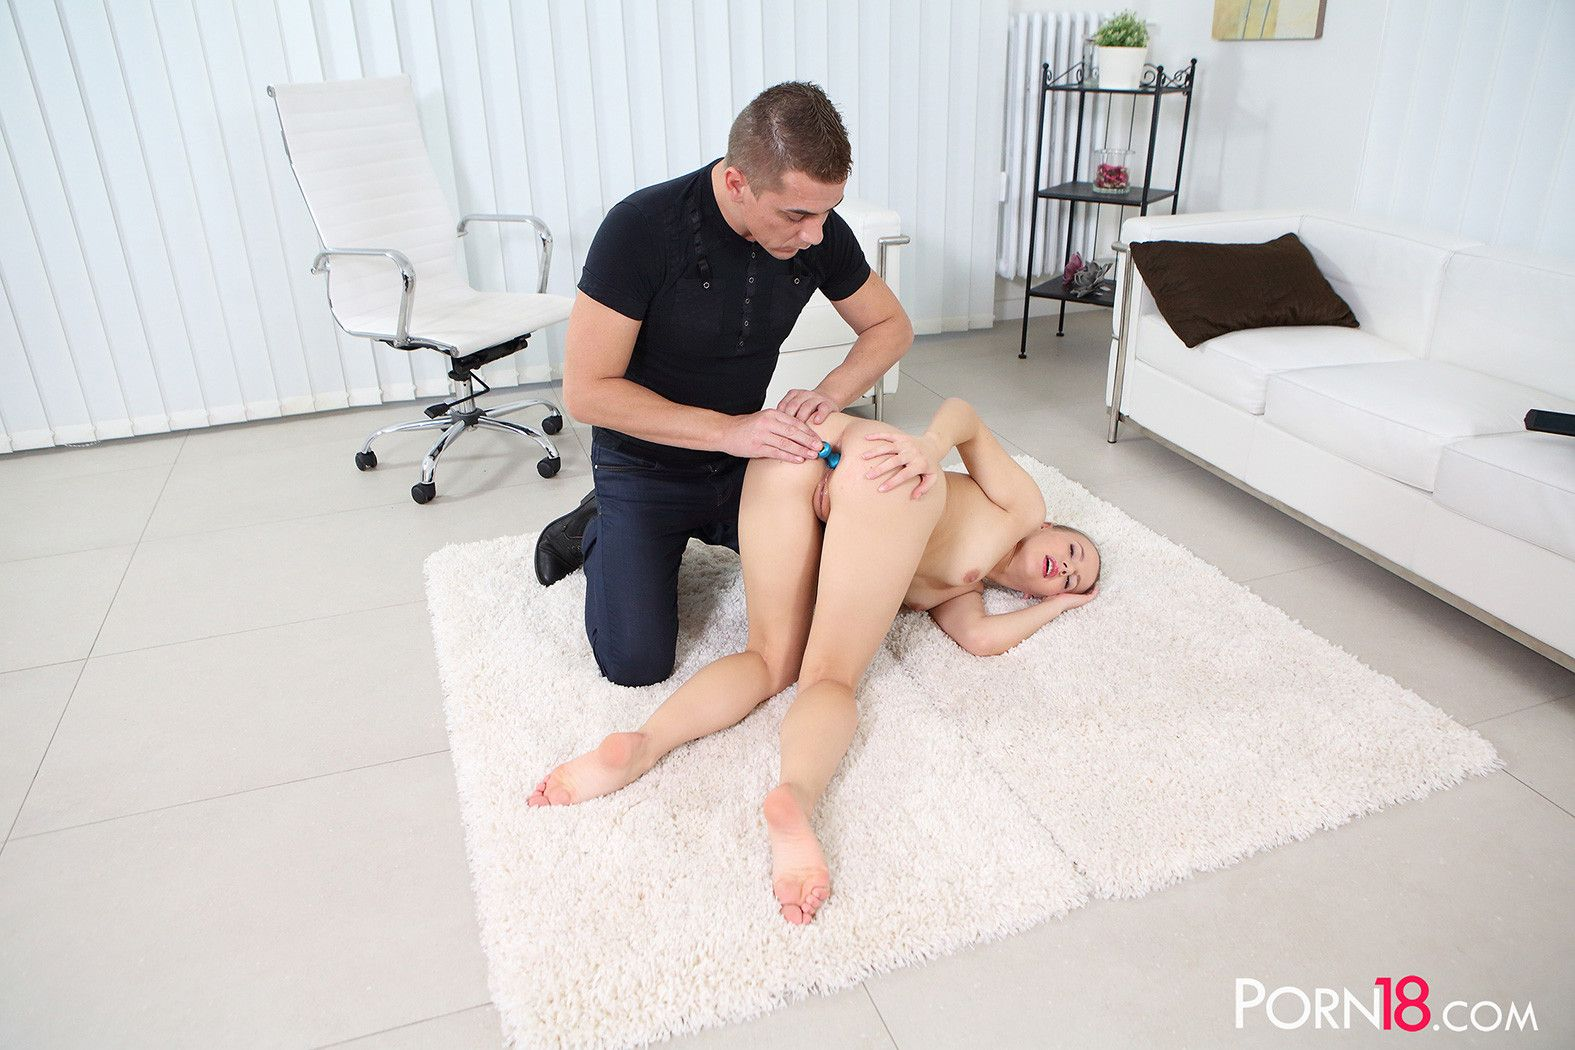 Lovely olivia grace gets her shave tight innie banged in the cas